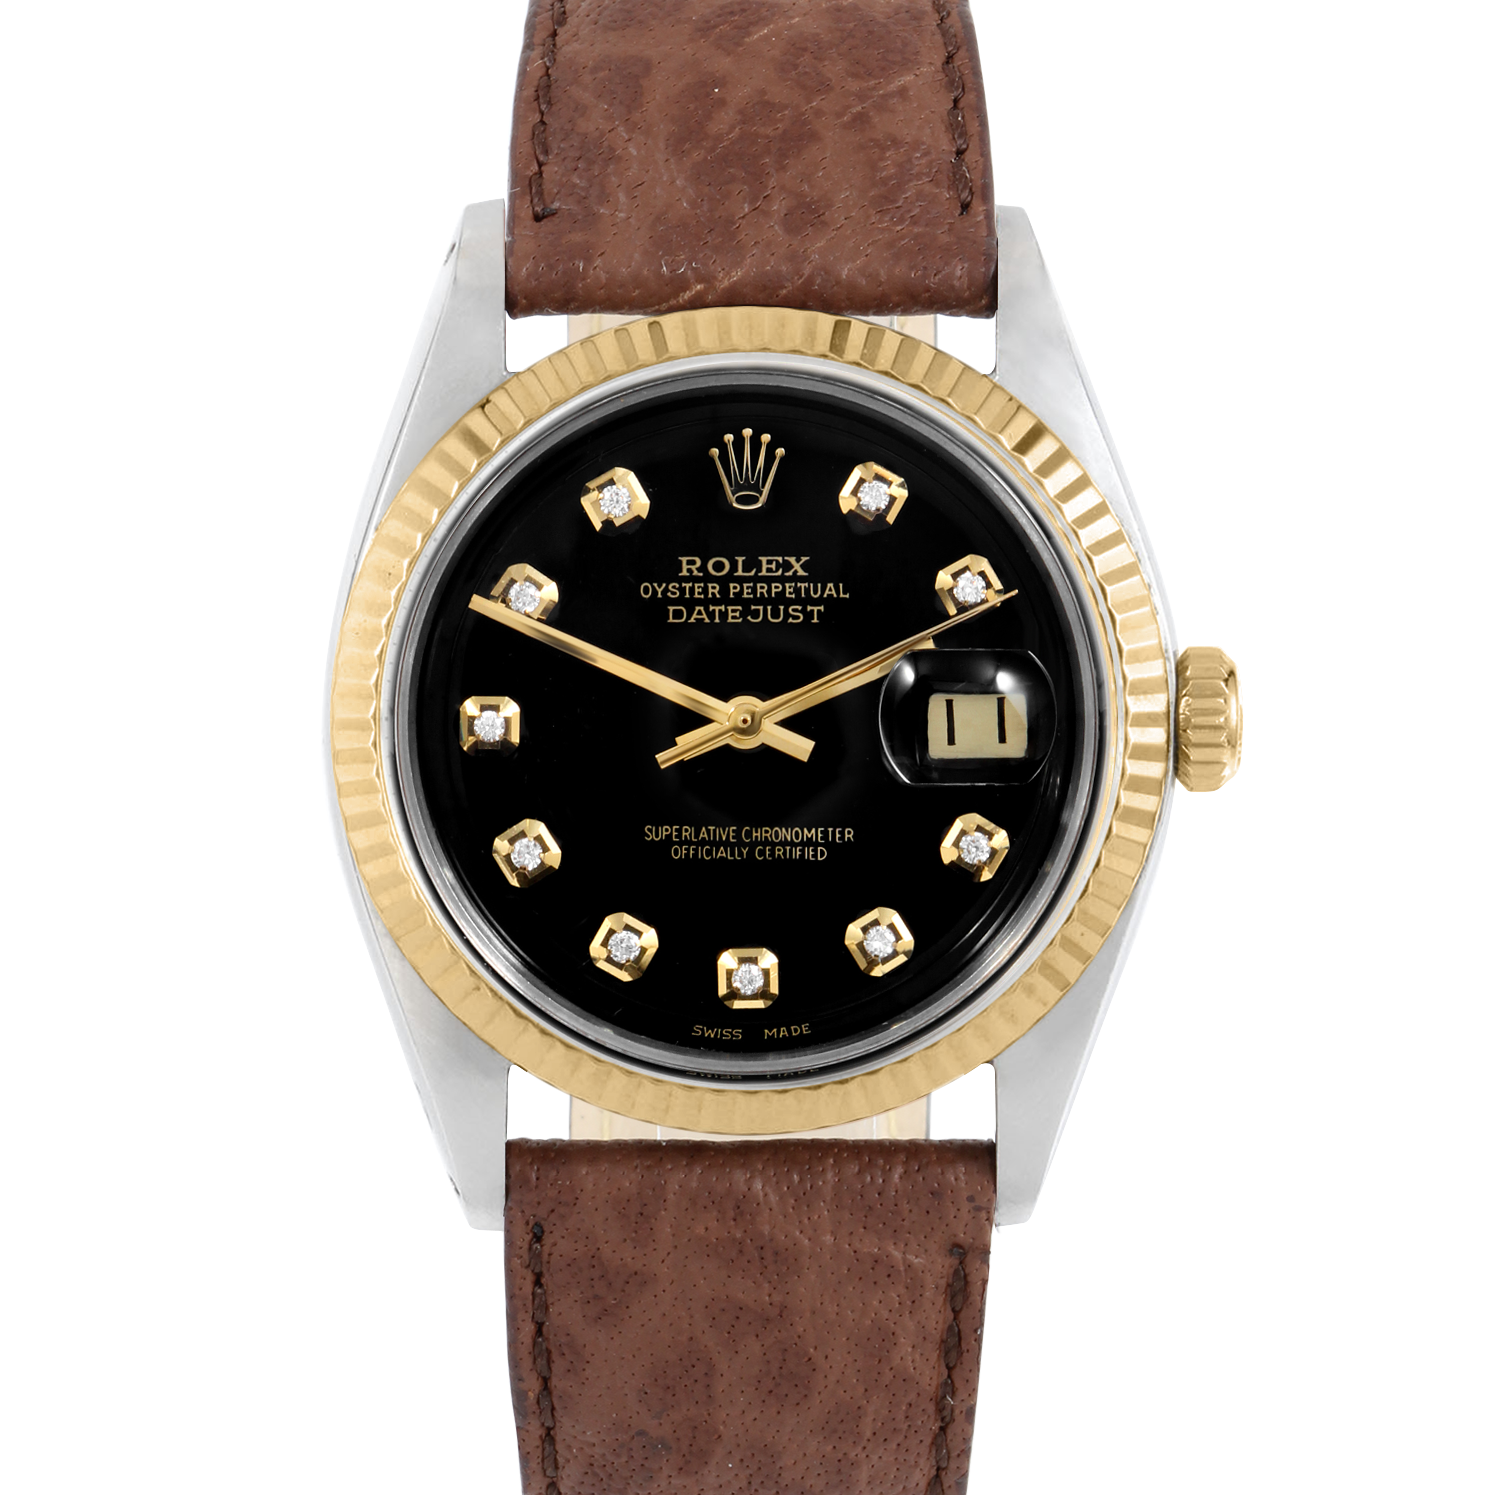 Rolex Datejust 36 1601 Yellow Gold & Stainless Steel, Custom Black Diamond, Fluted Bezel On A Brown Buffalo Leather Strap - Men's Pre-Owned Watch